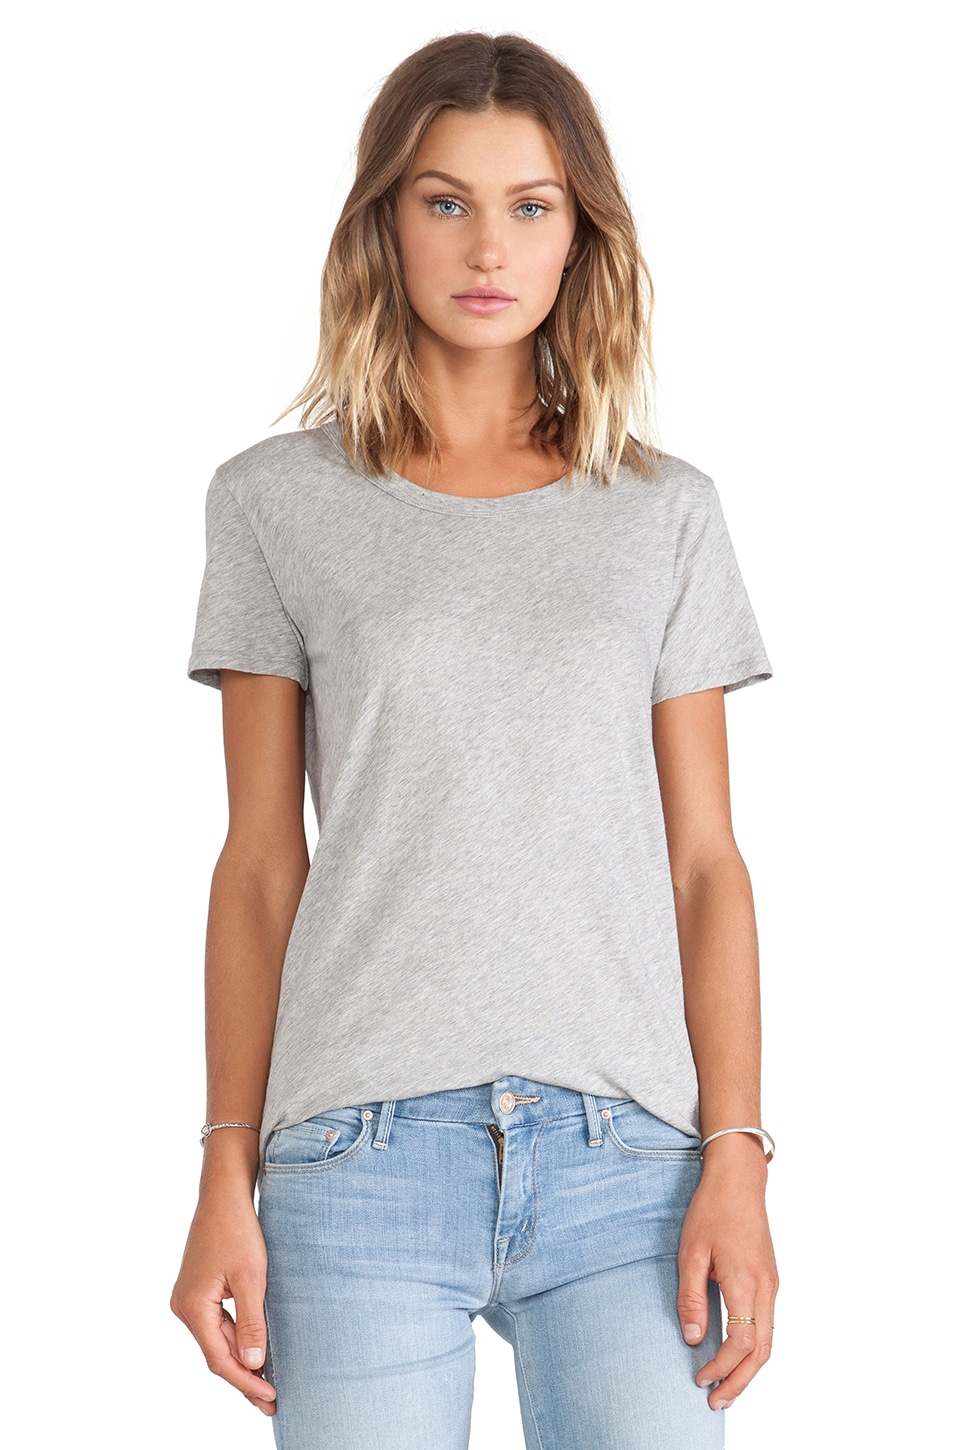 Enza Costa Tissue Jersey Loose Short Sleeve Crew in Light Heather Grey